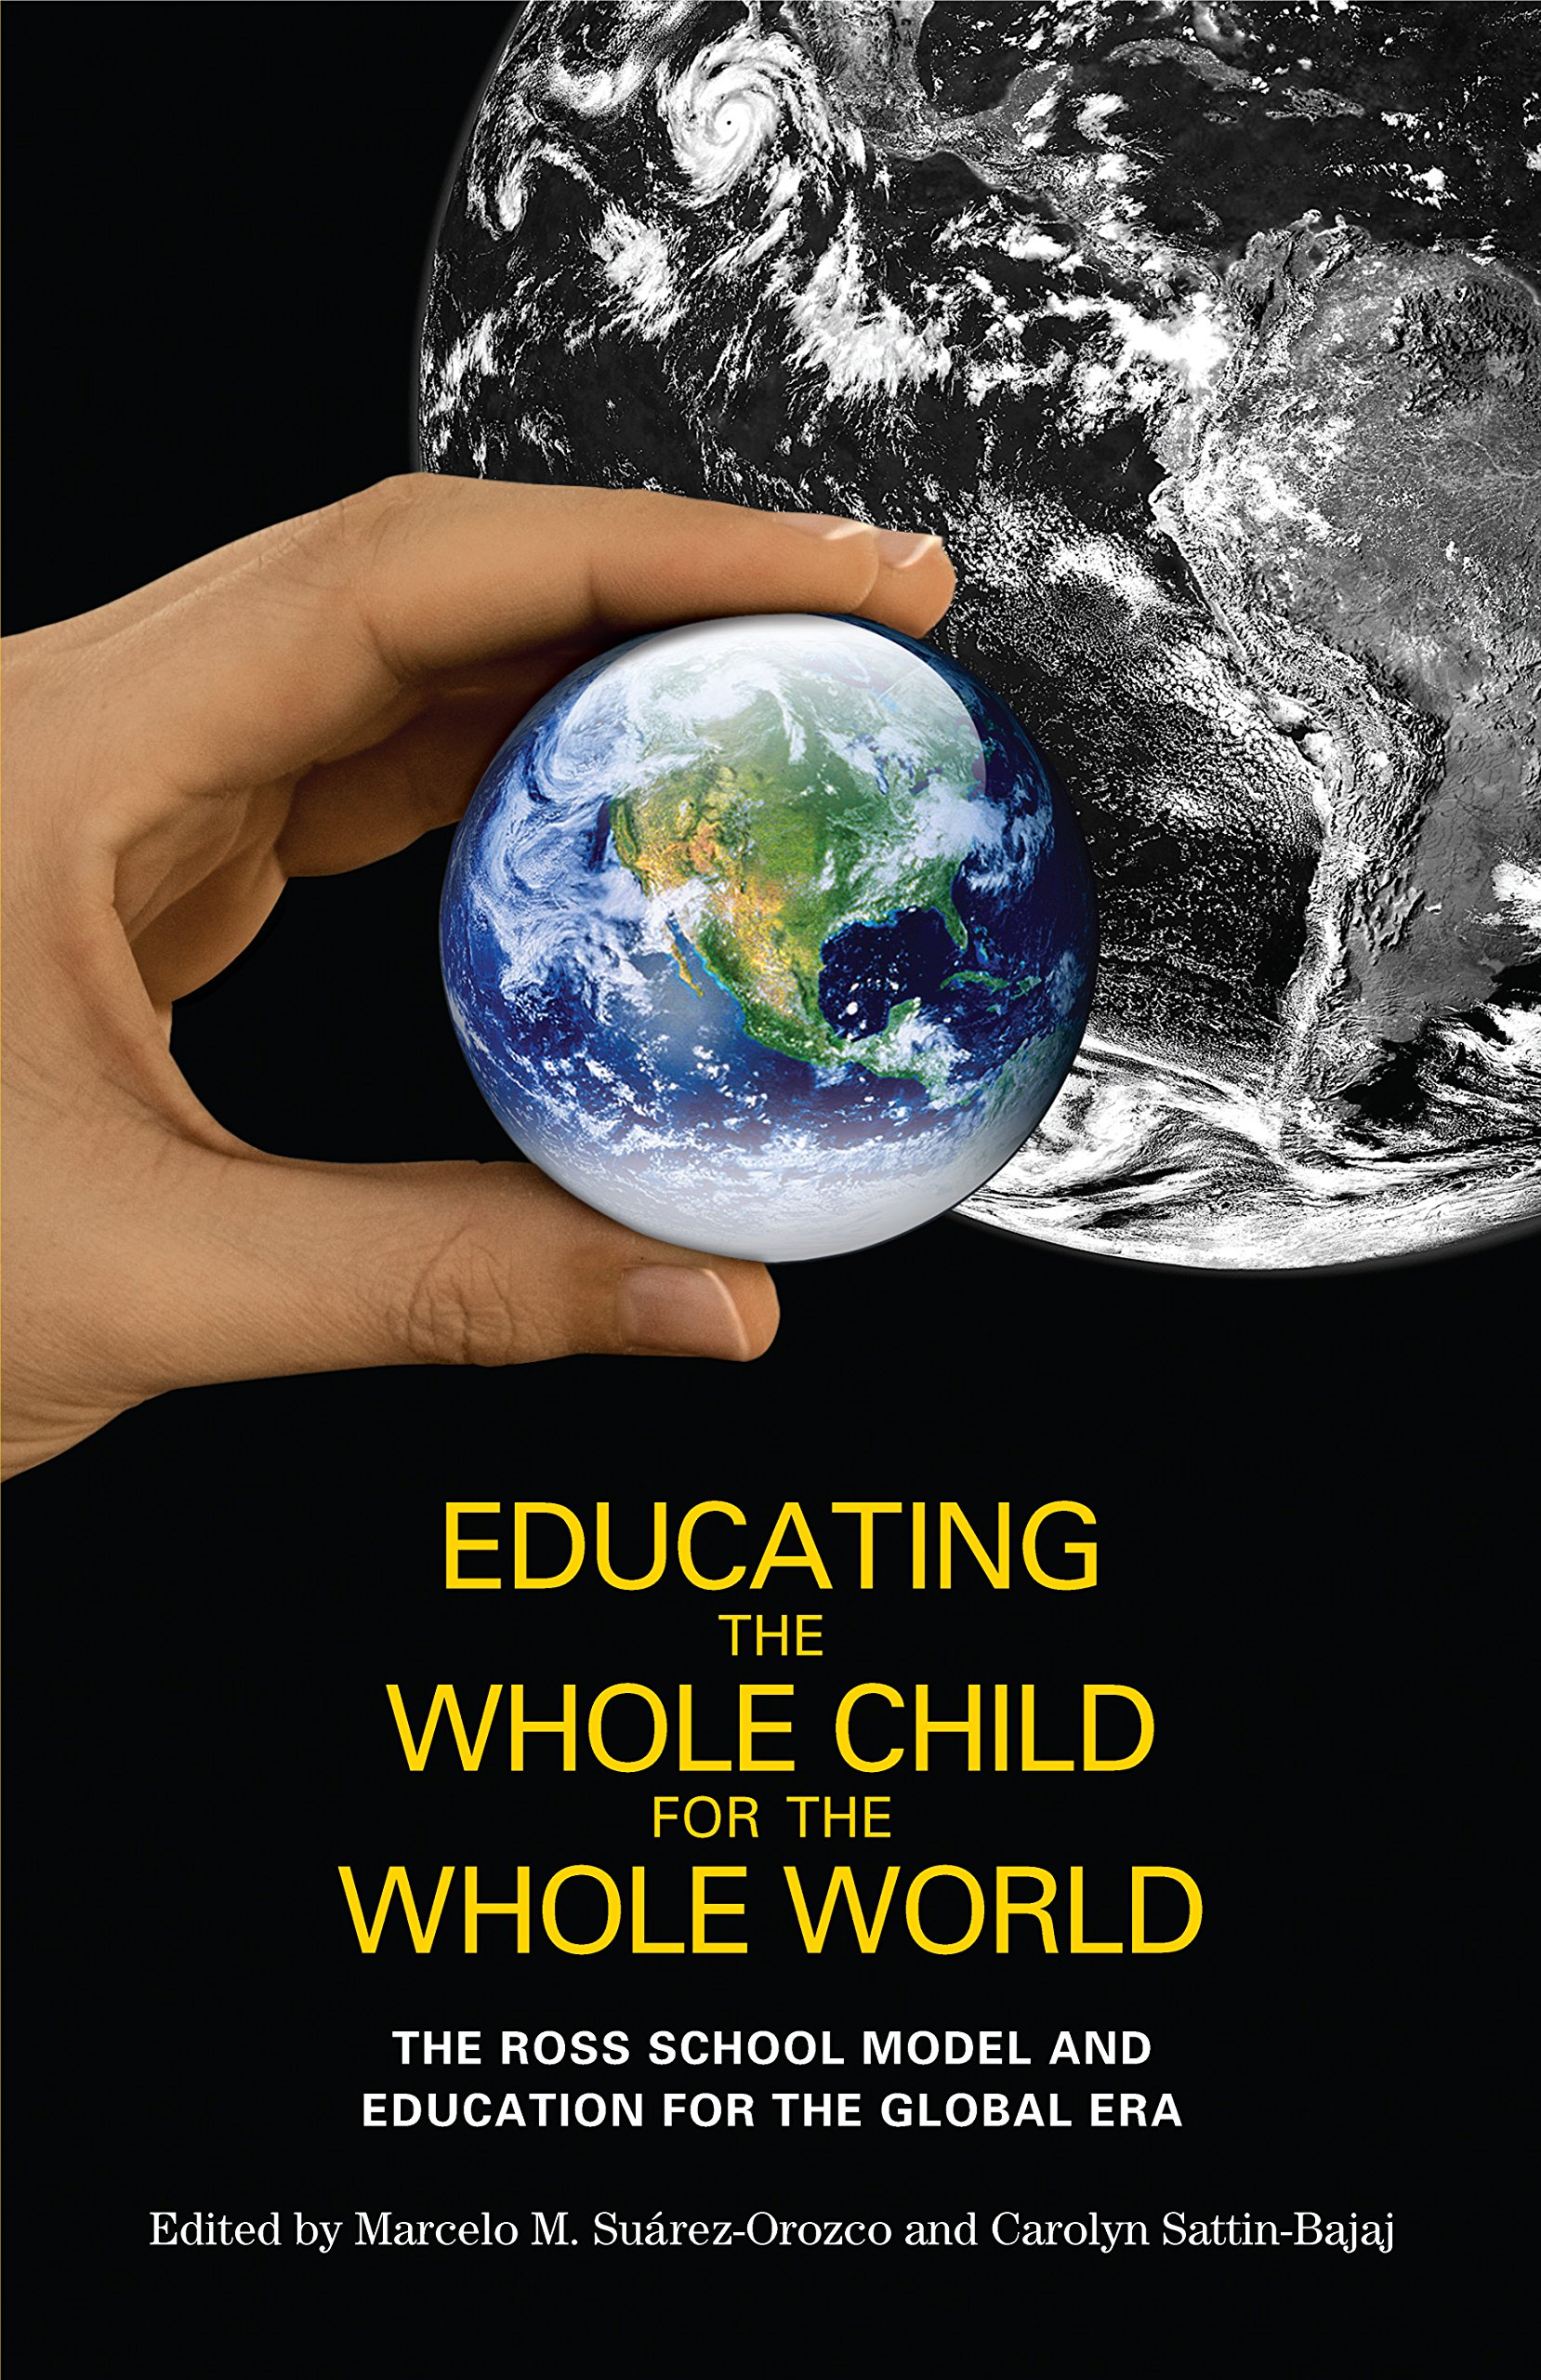 Download Educating the Whole Child for the Whole World: The Ross School Model and Education for the Global Era PDF